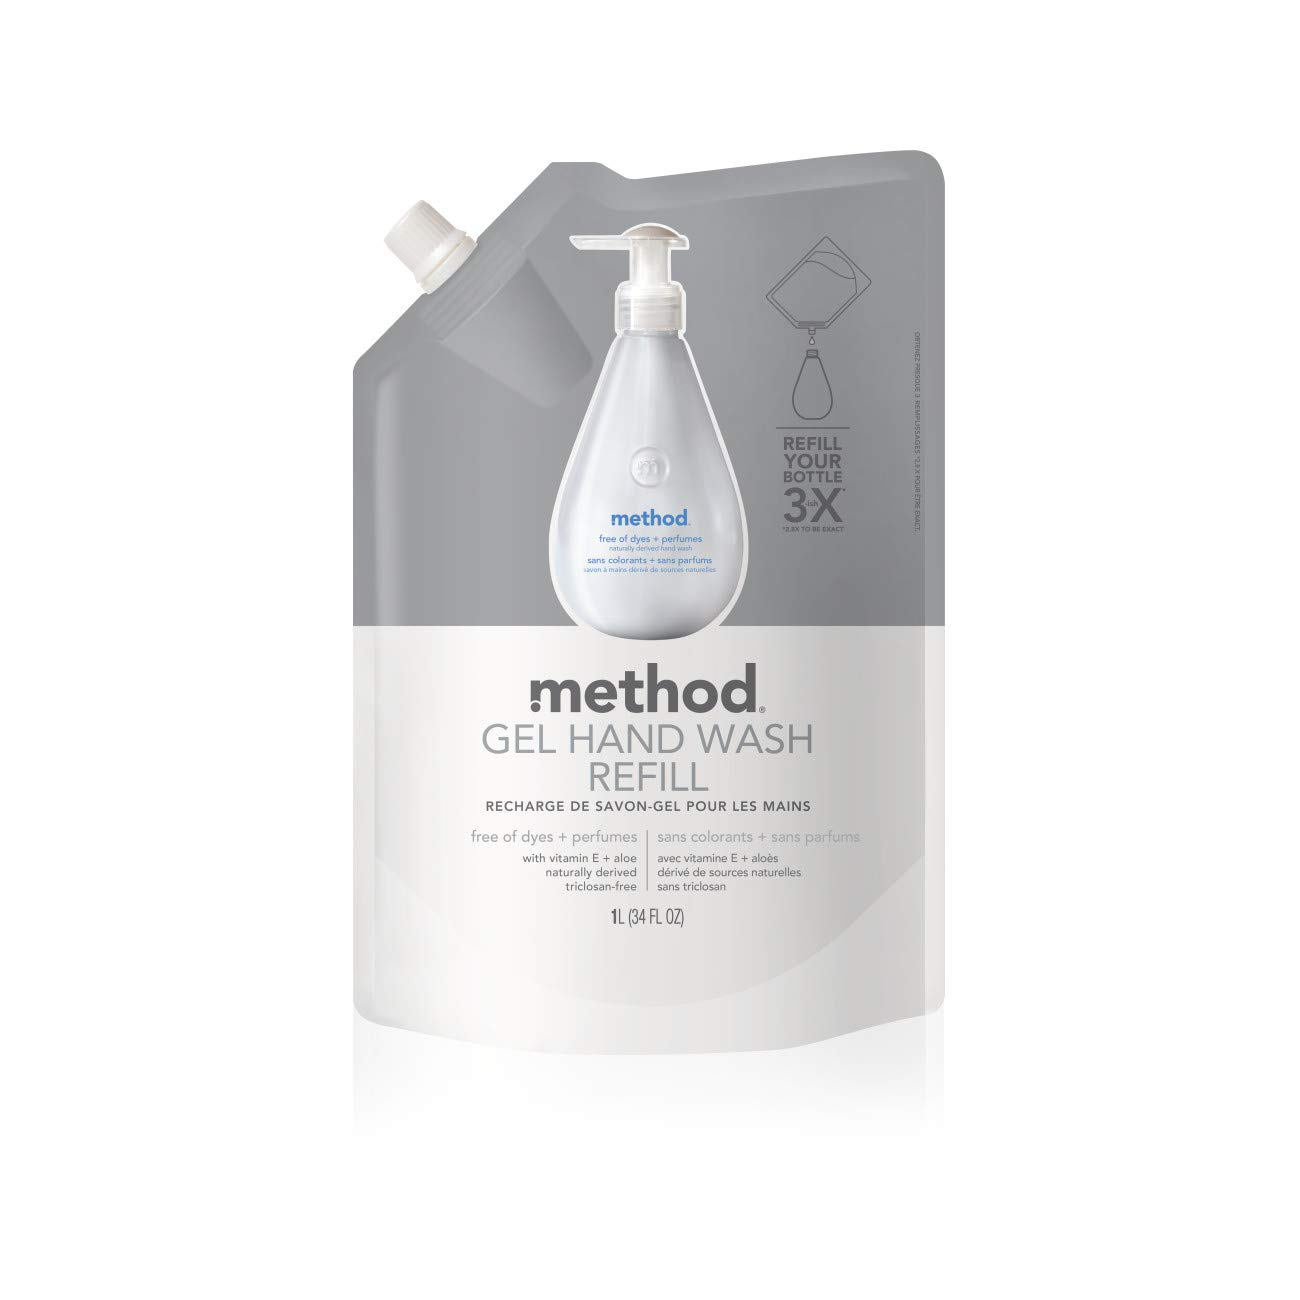 Method Gel Hand Wash Refill Pouch, Free of Dyes + Perfumes, 34 Fl. Oz (Pack of 1)